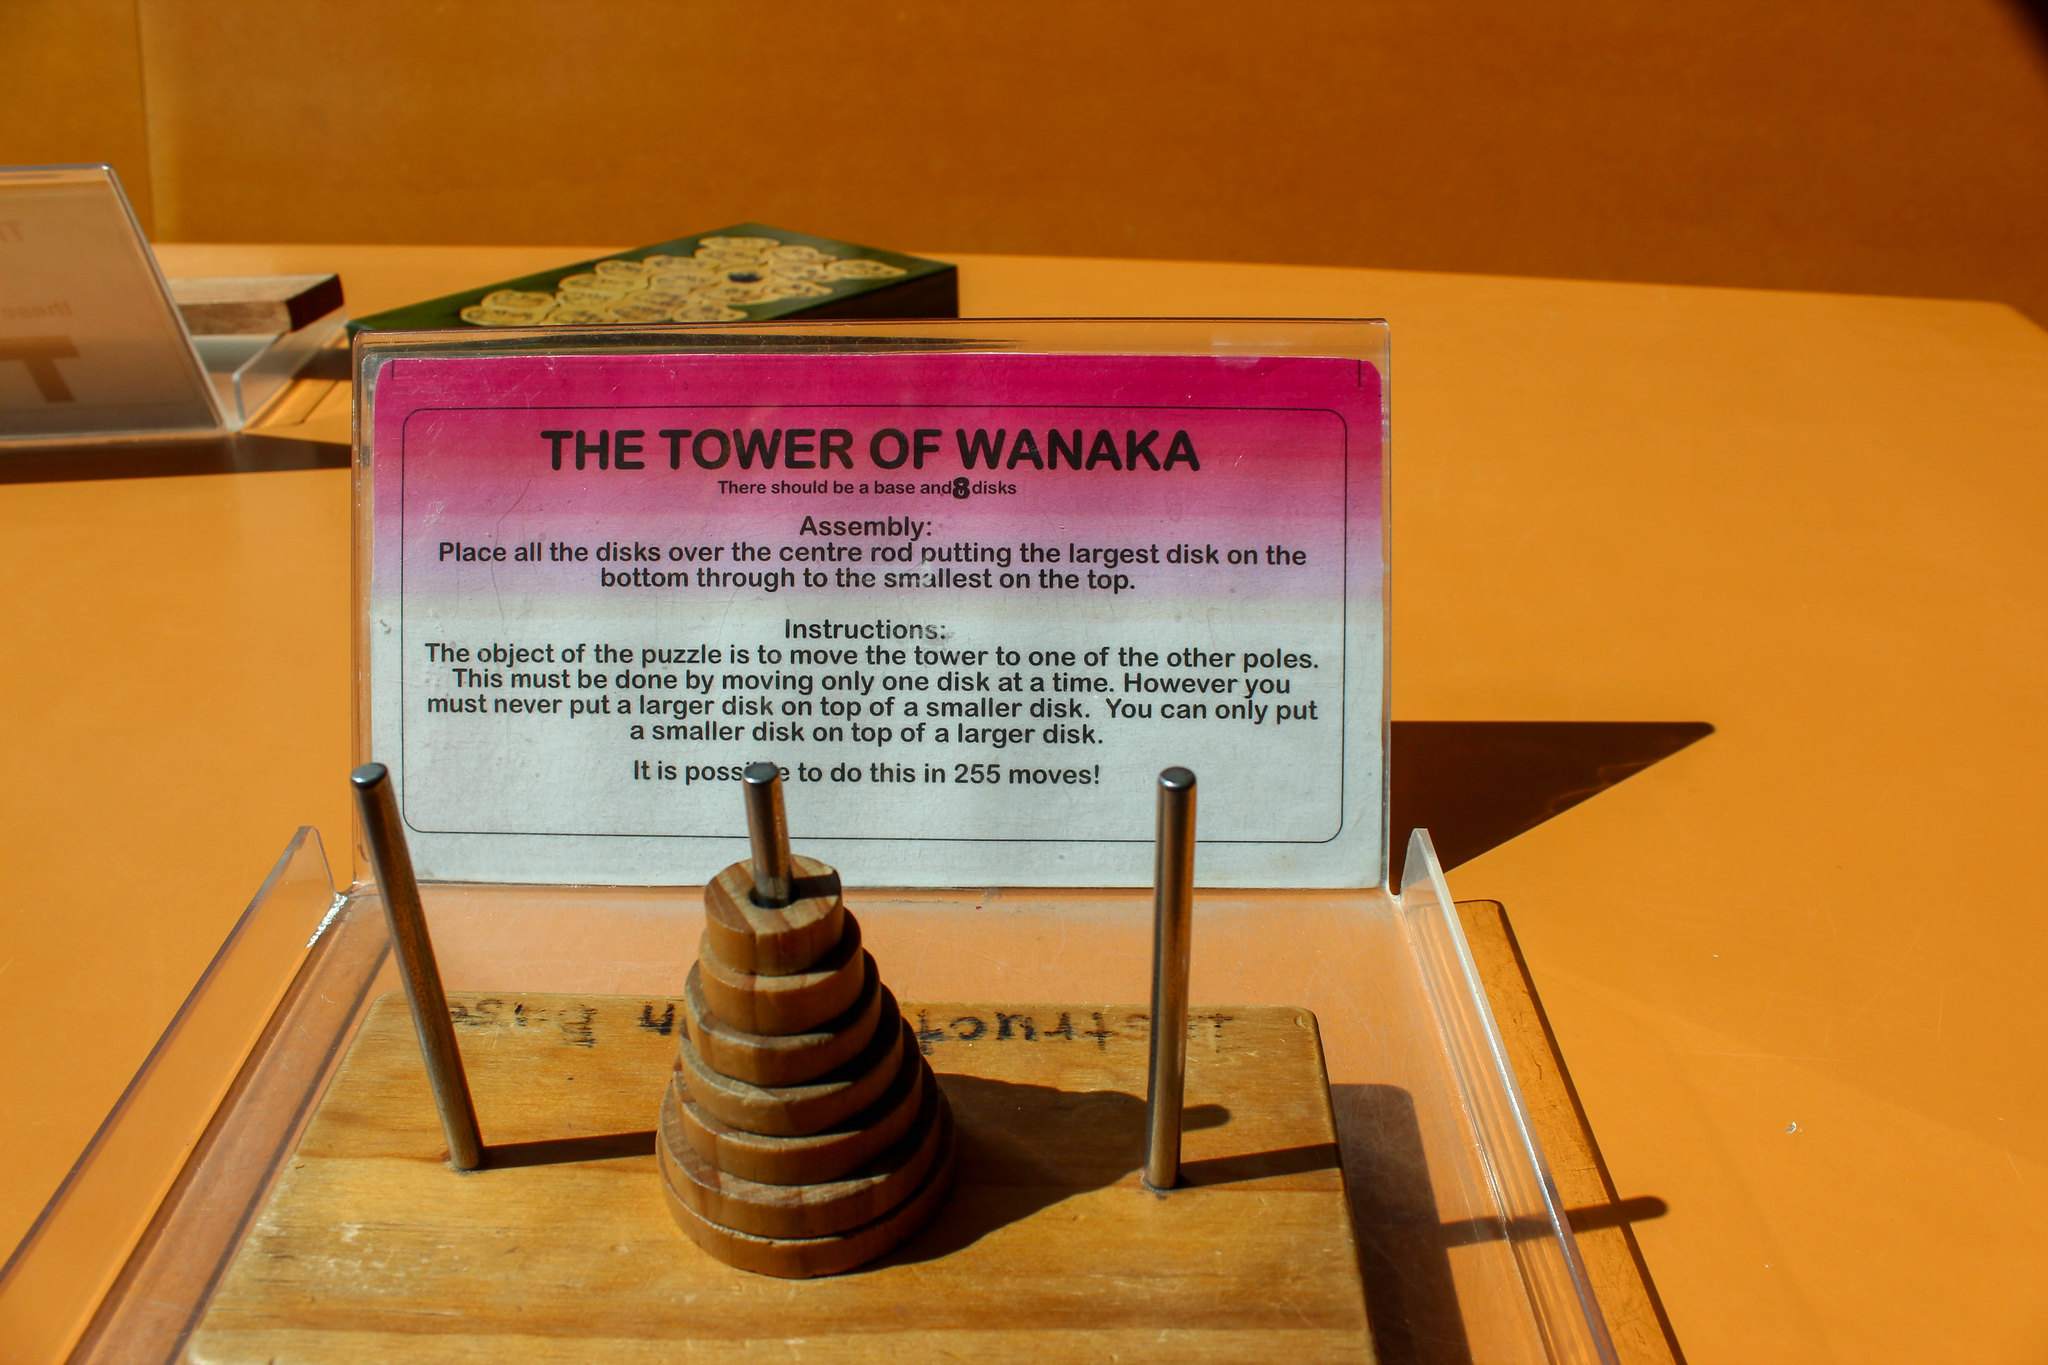 Puzzling World (Wanaka)